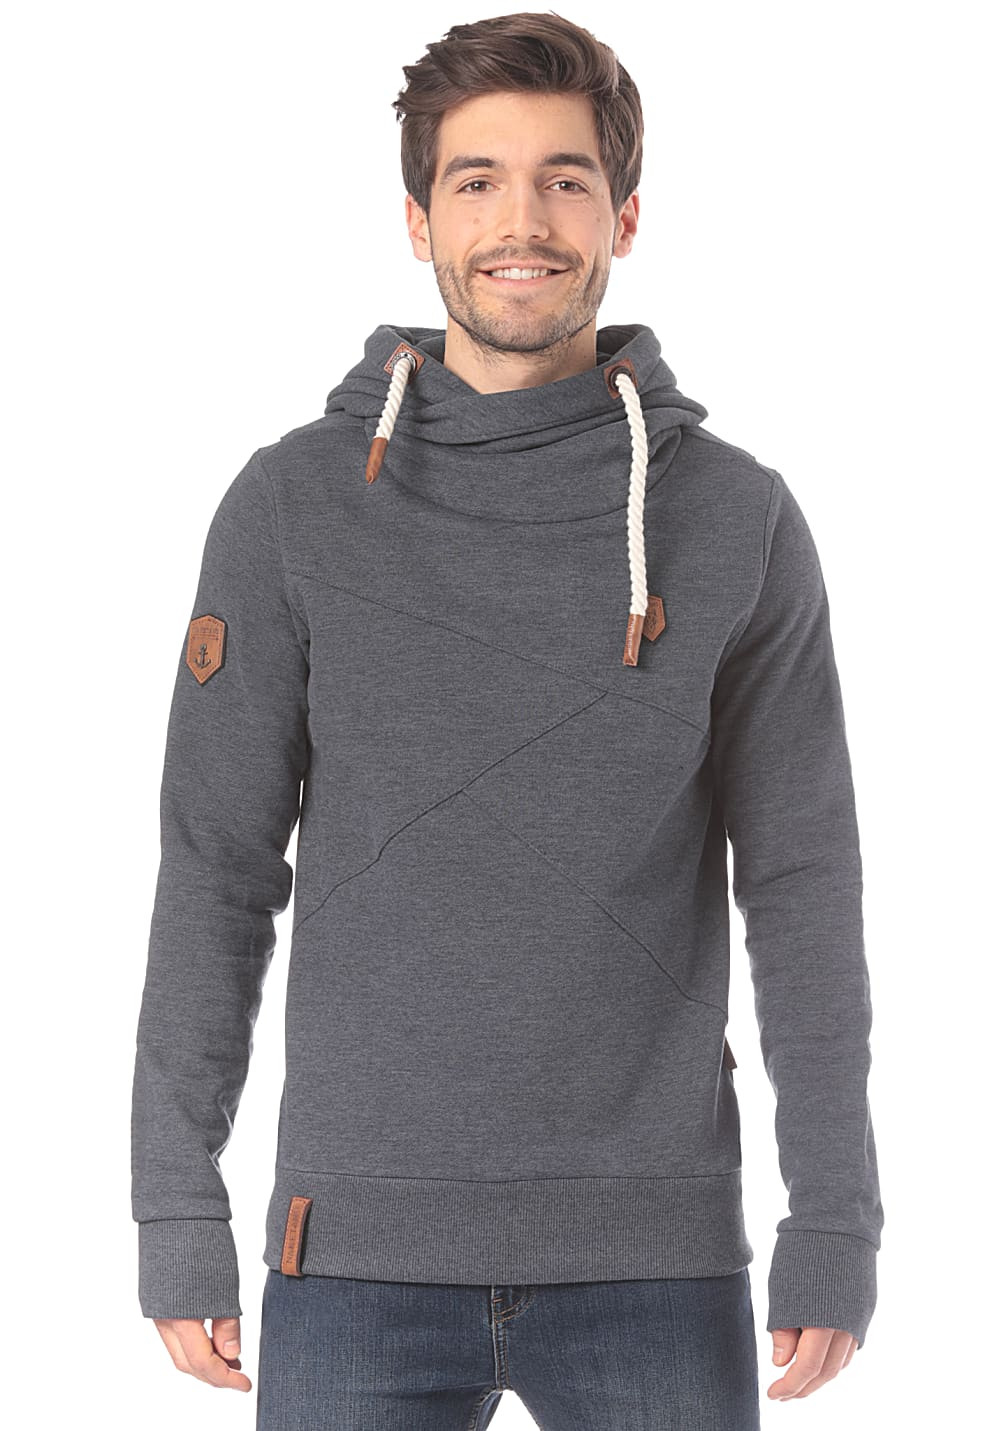 NAKETANO Lennox Hooded Sweatshirt for Men Blue